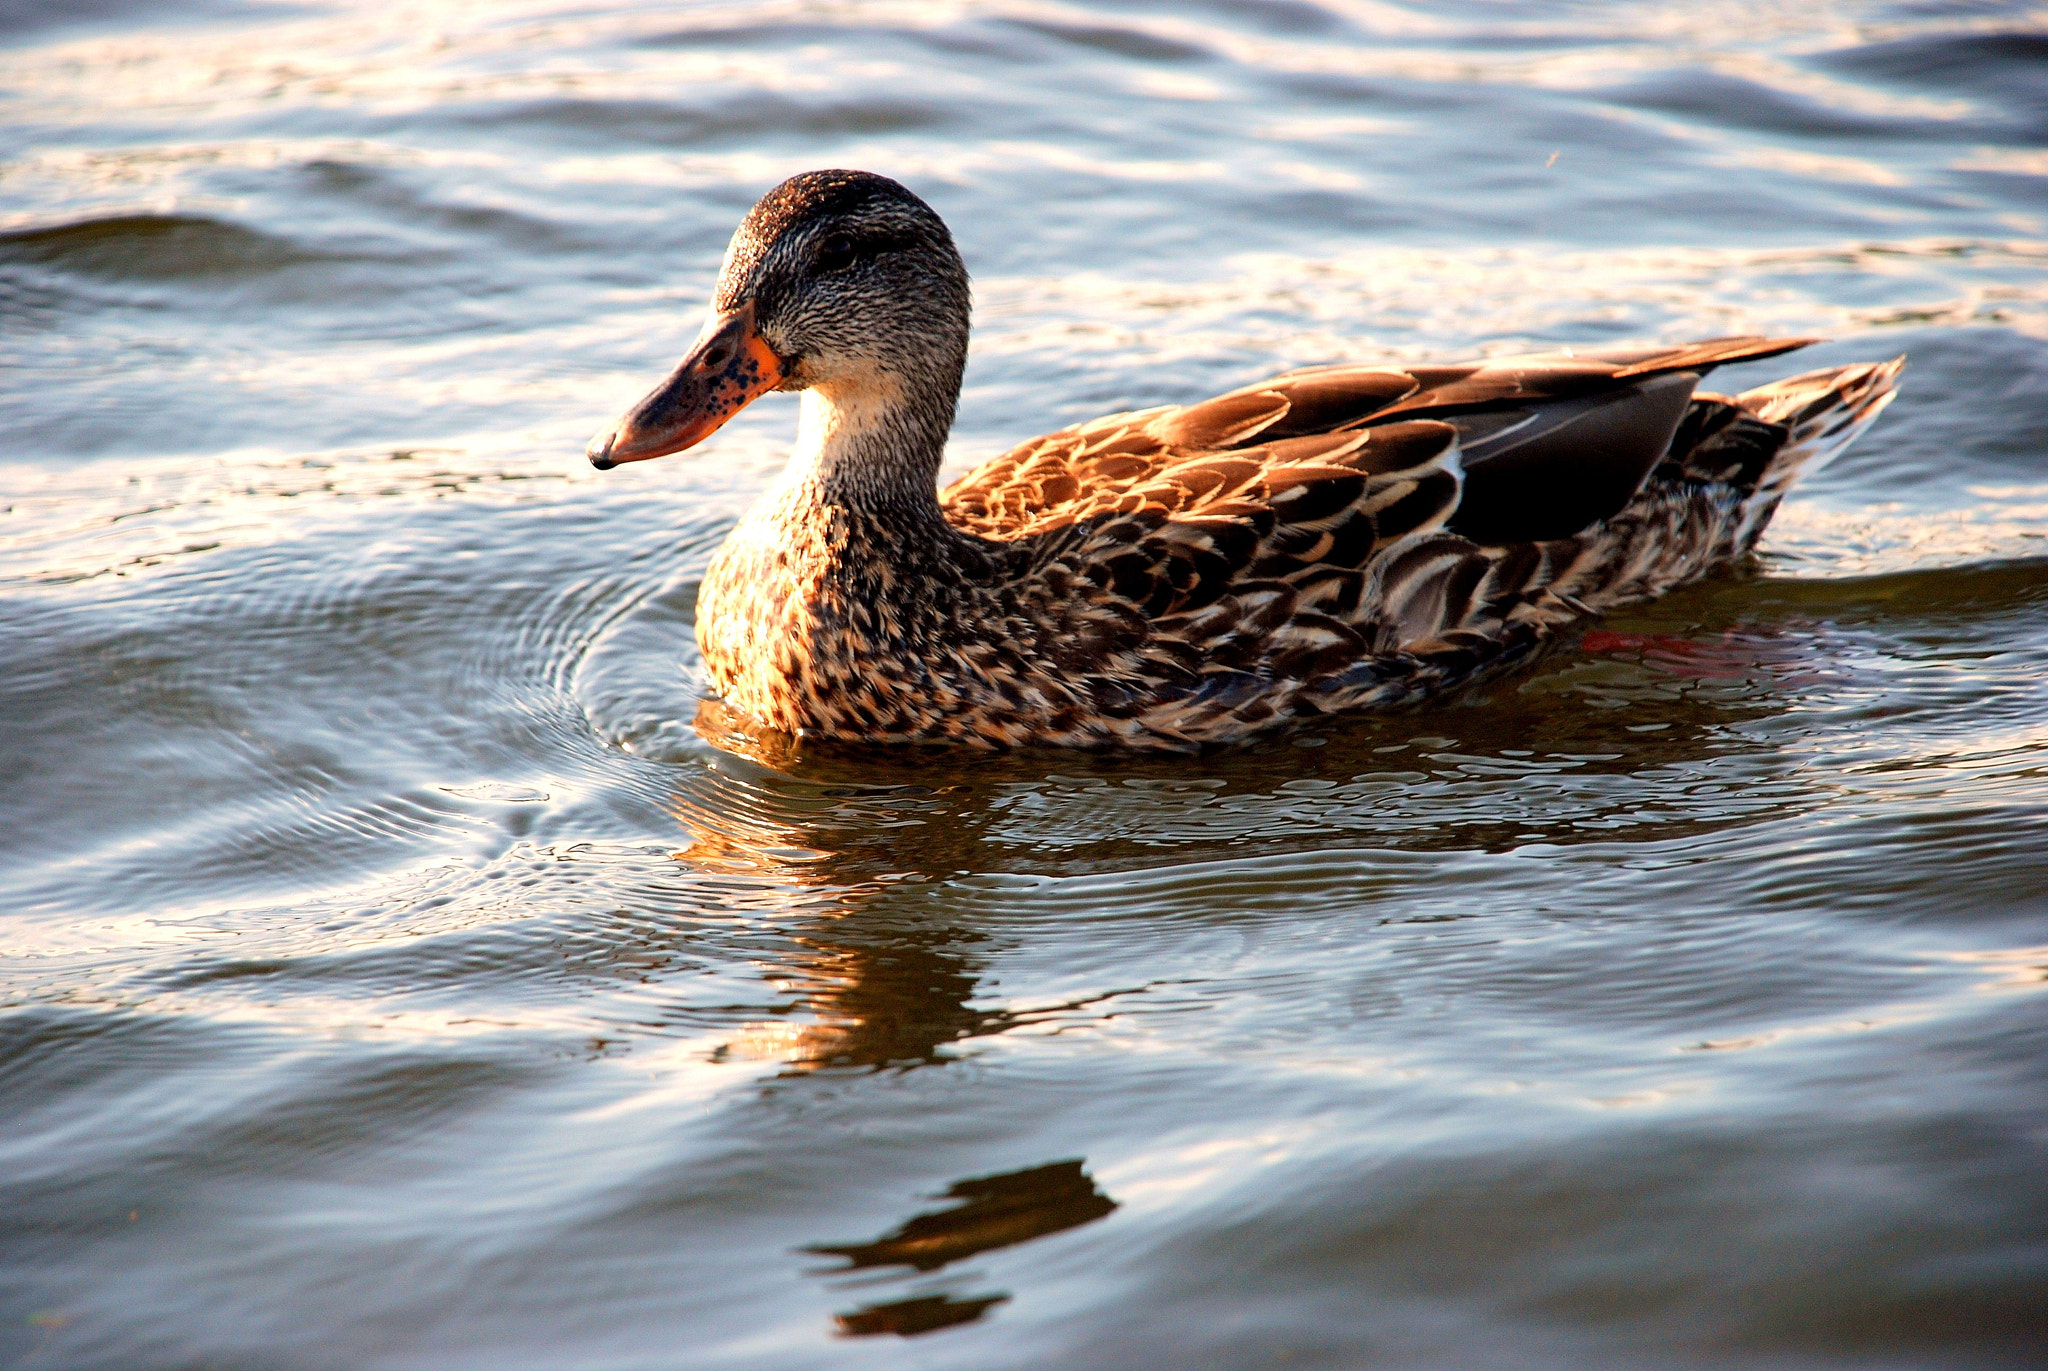 Photograph Duck on Water by Ashley Z on 500px